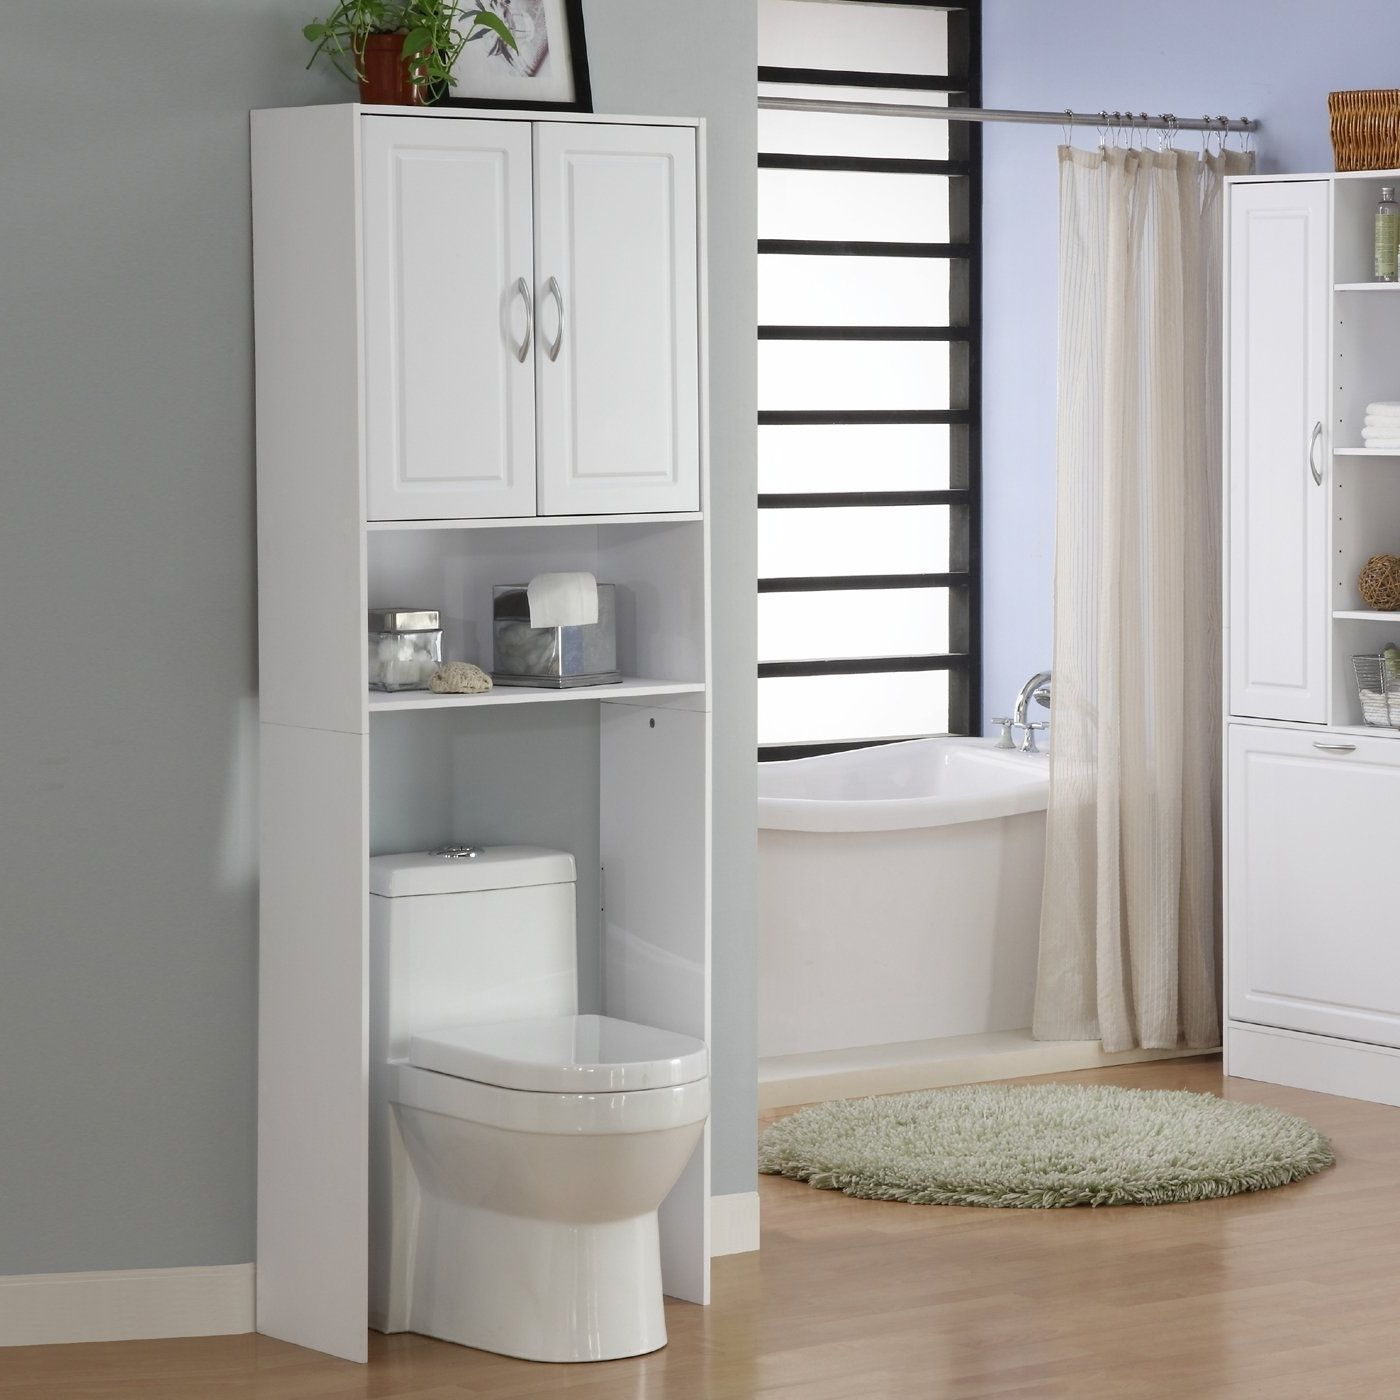 Over The Toilet Furniture House Construction Planset of dining room